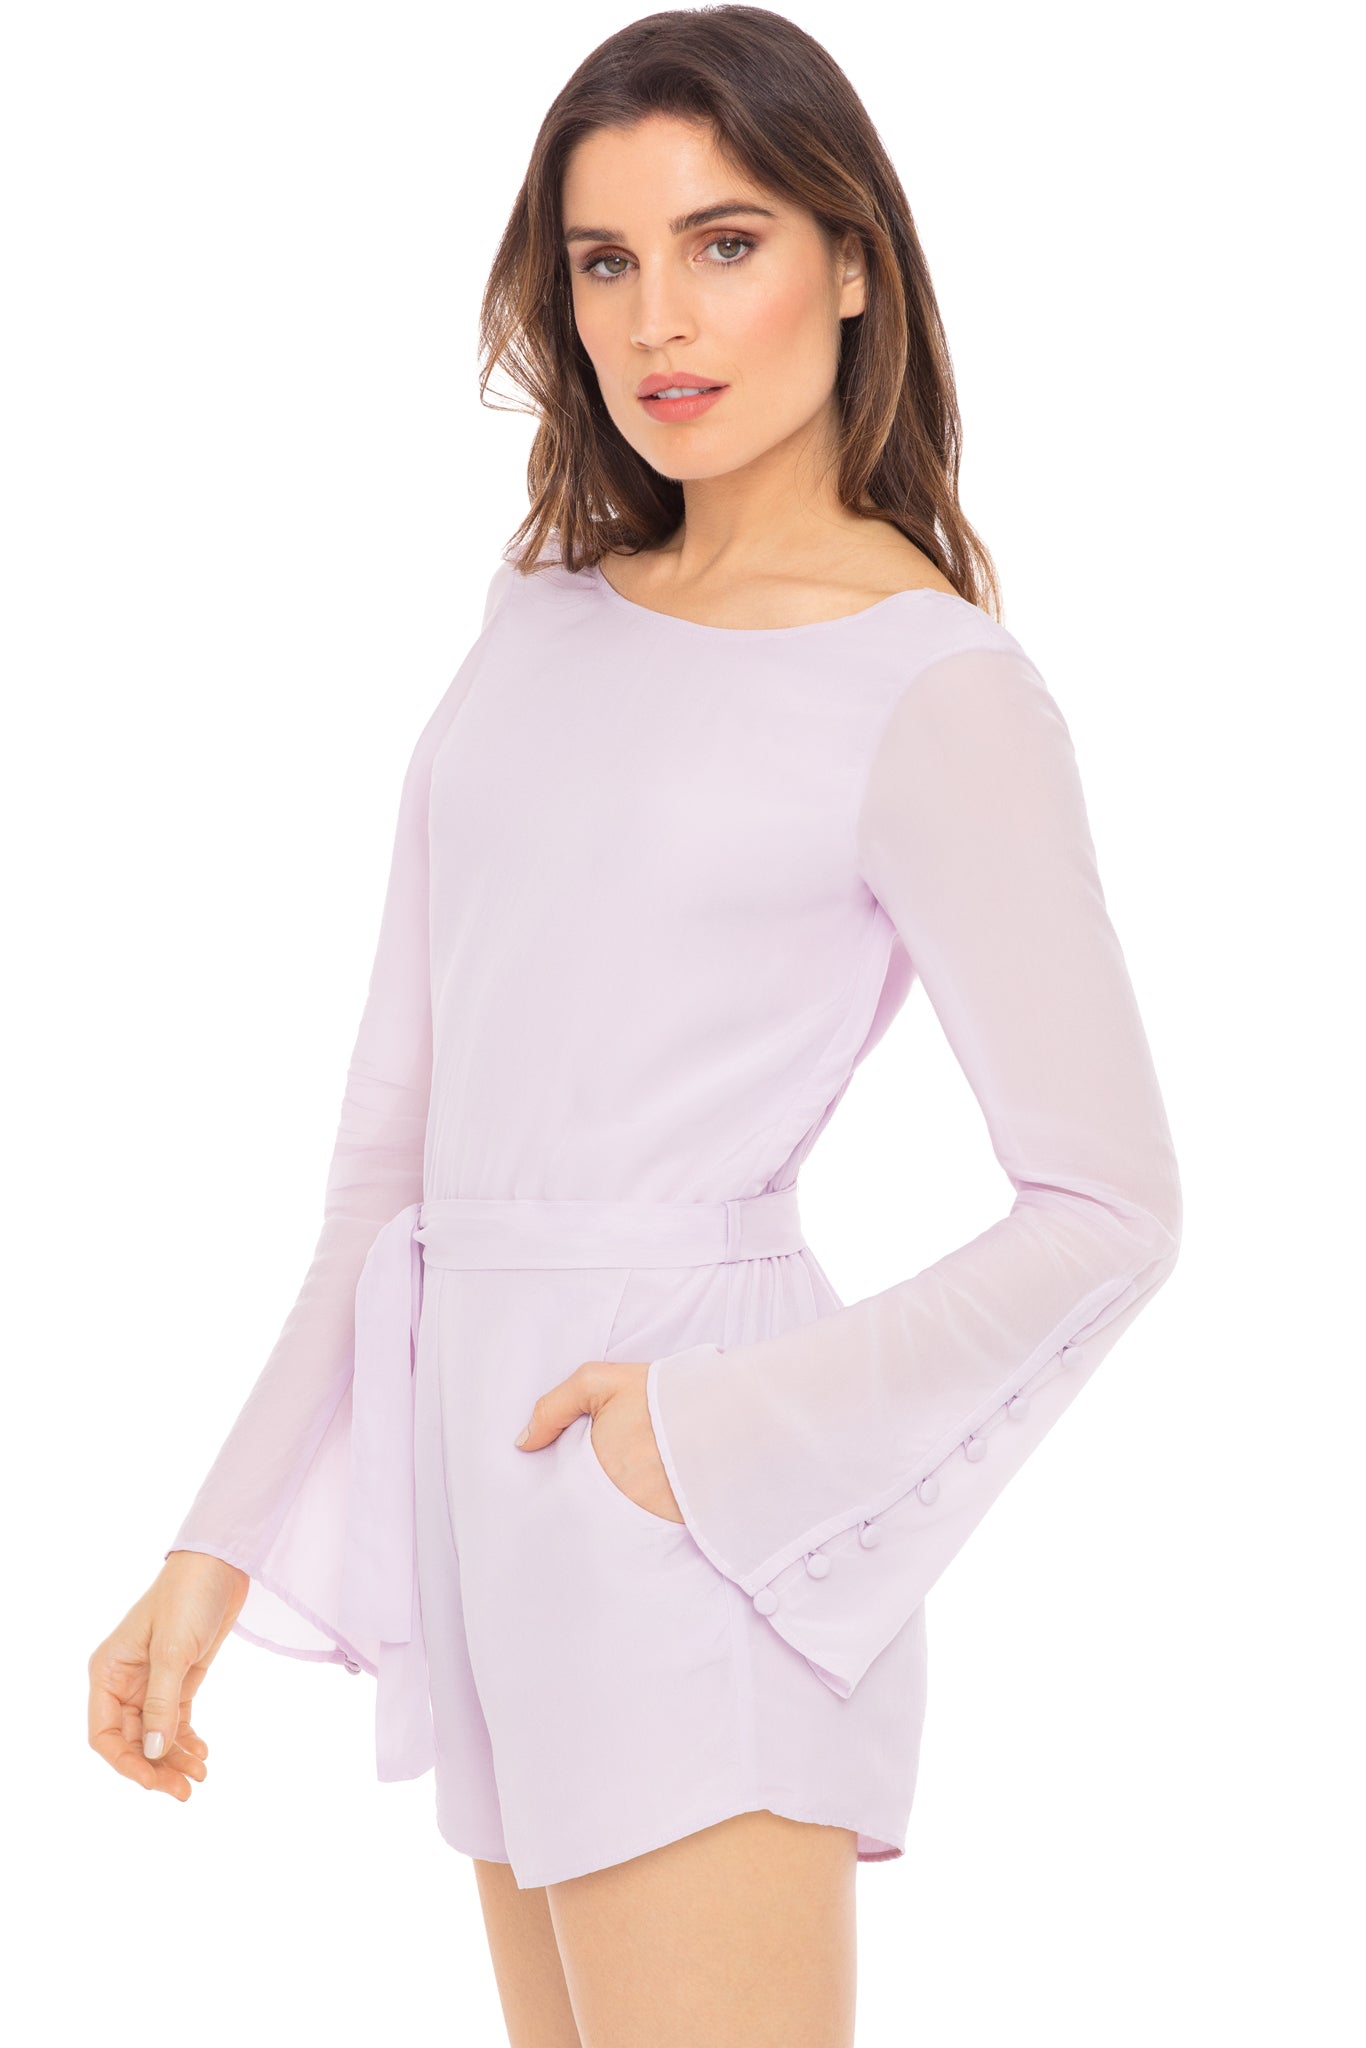 Belle long-sleeve romper in lavender - side view